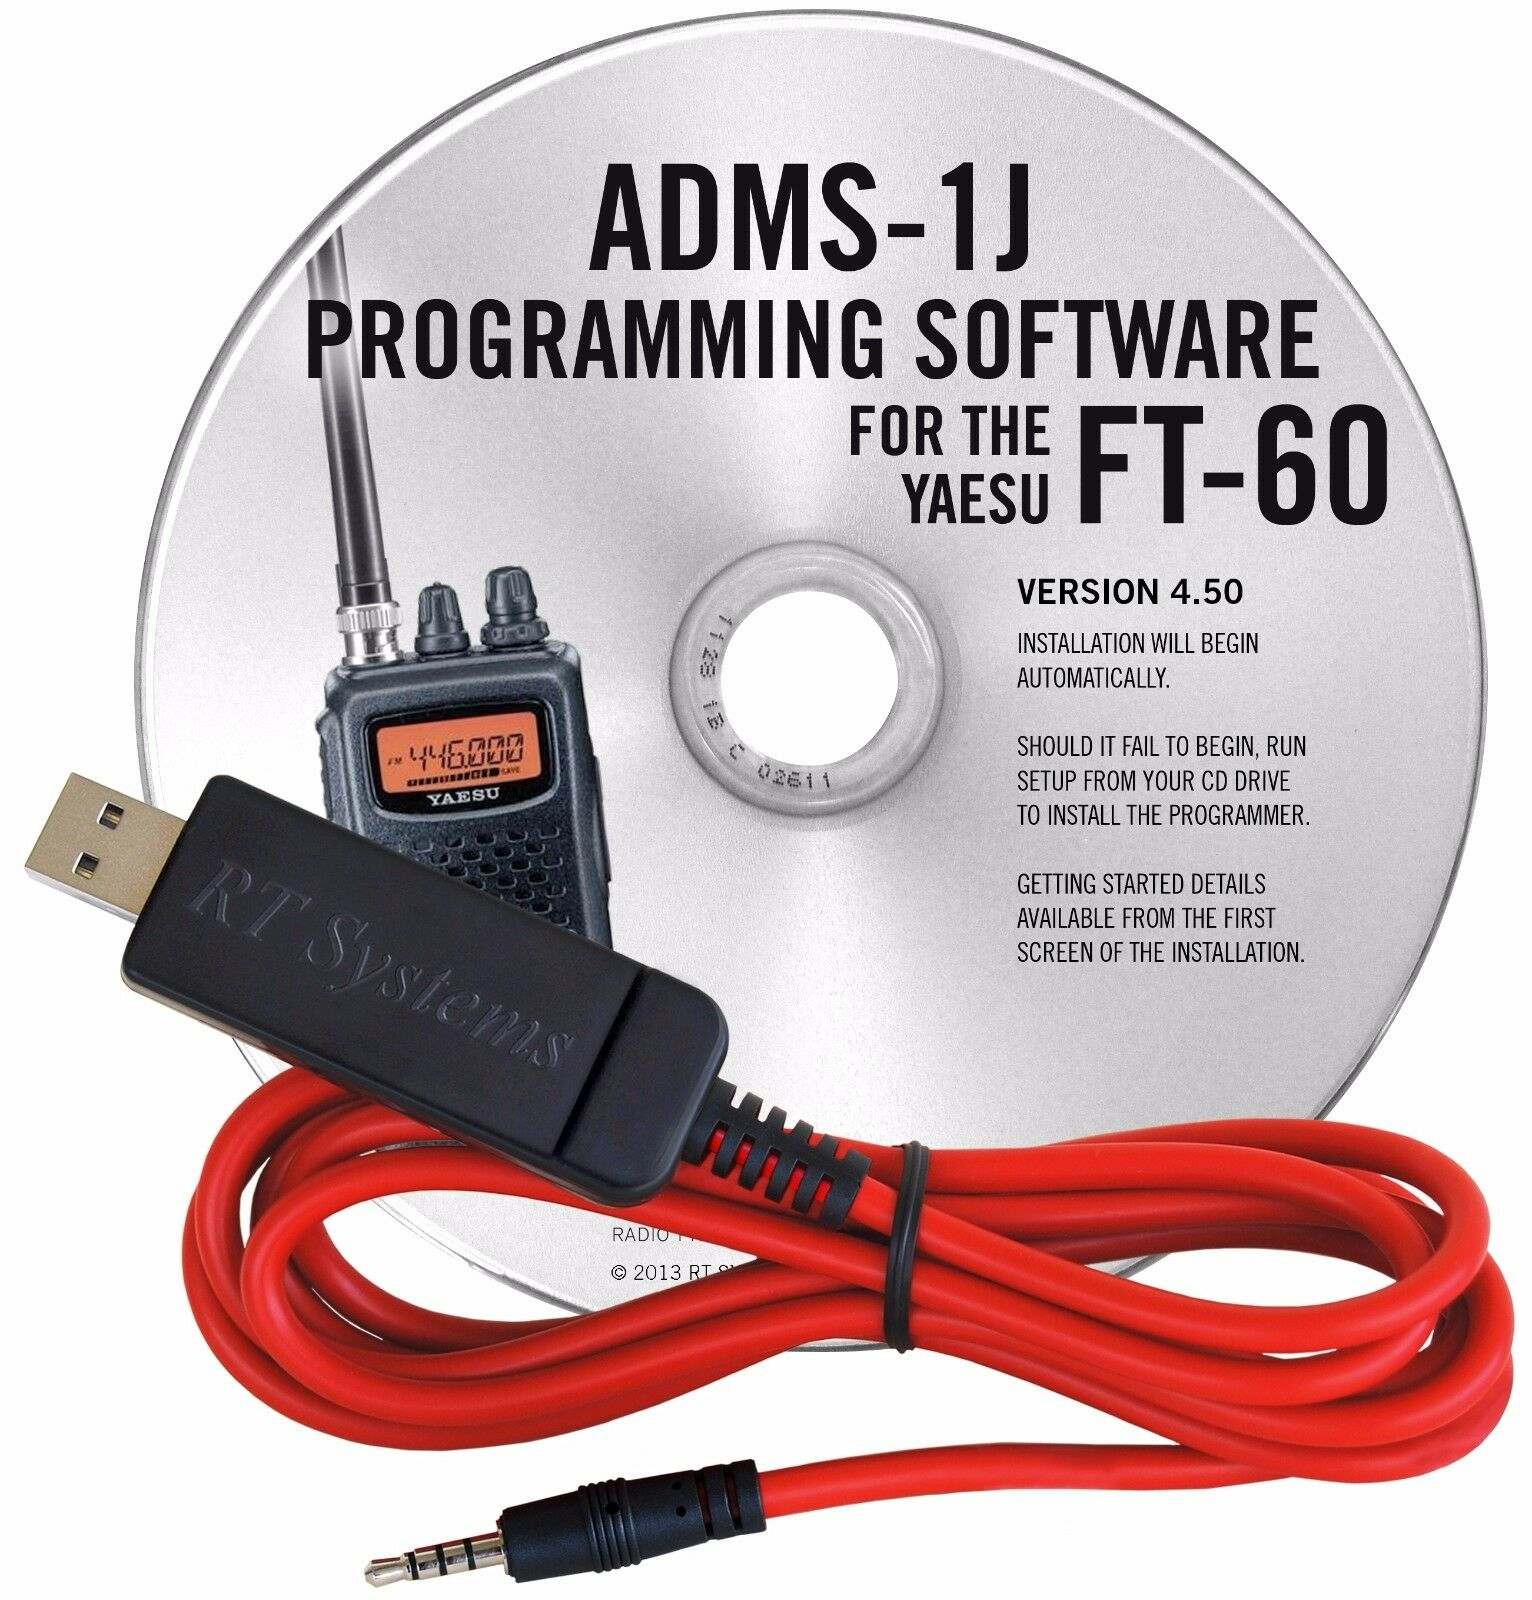 ADMS-2900 Programming Software and USB-29F cable for the Yaesu FT-2900R